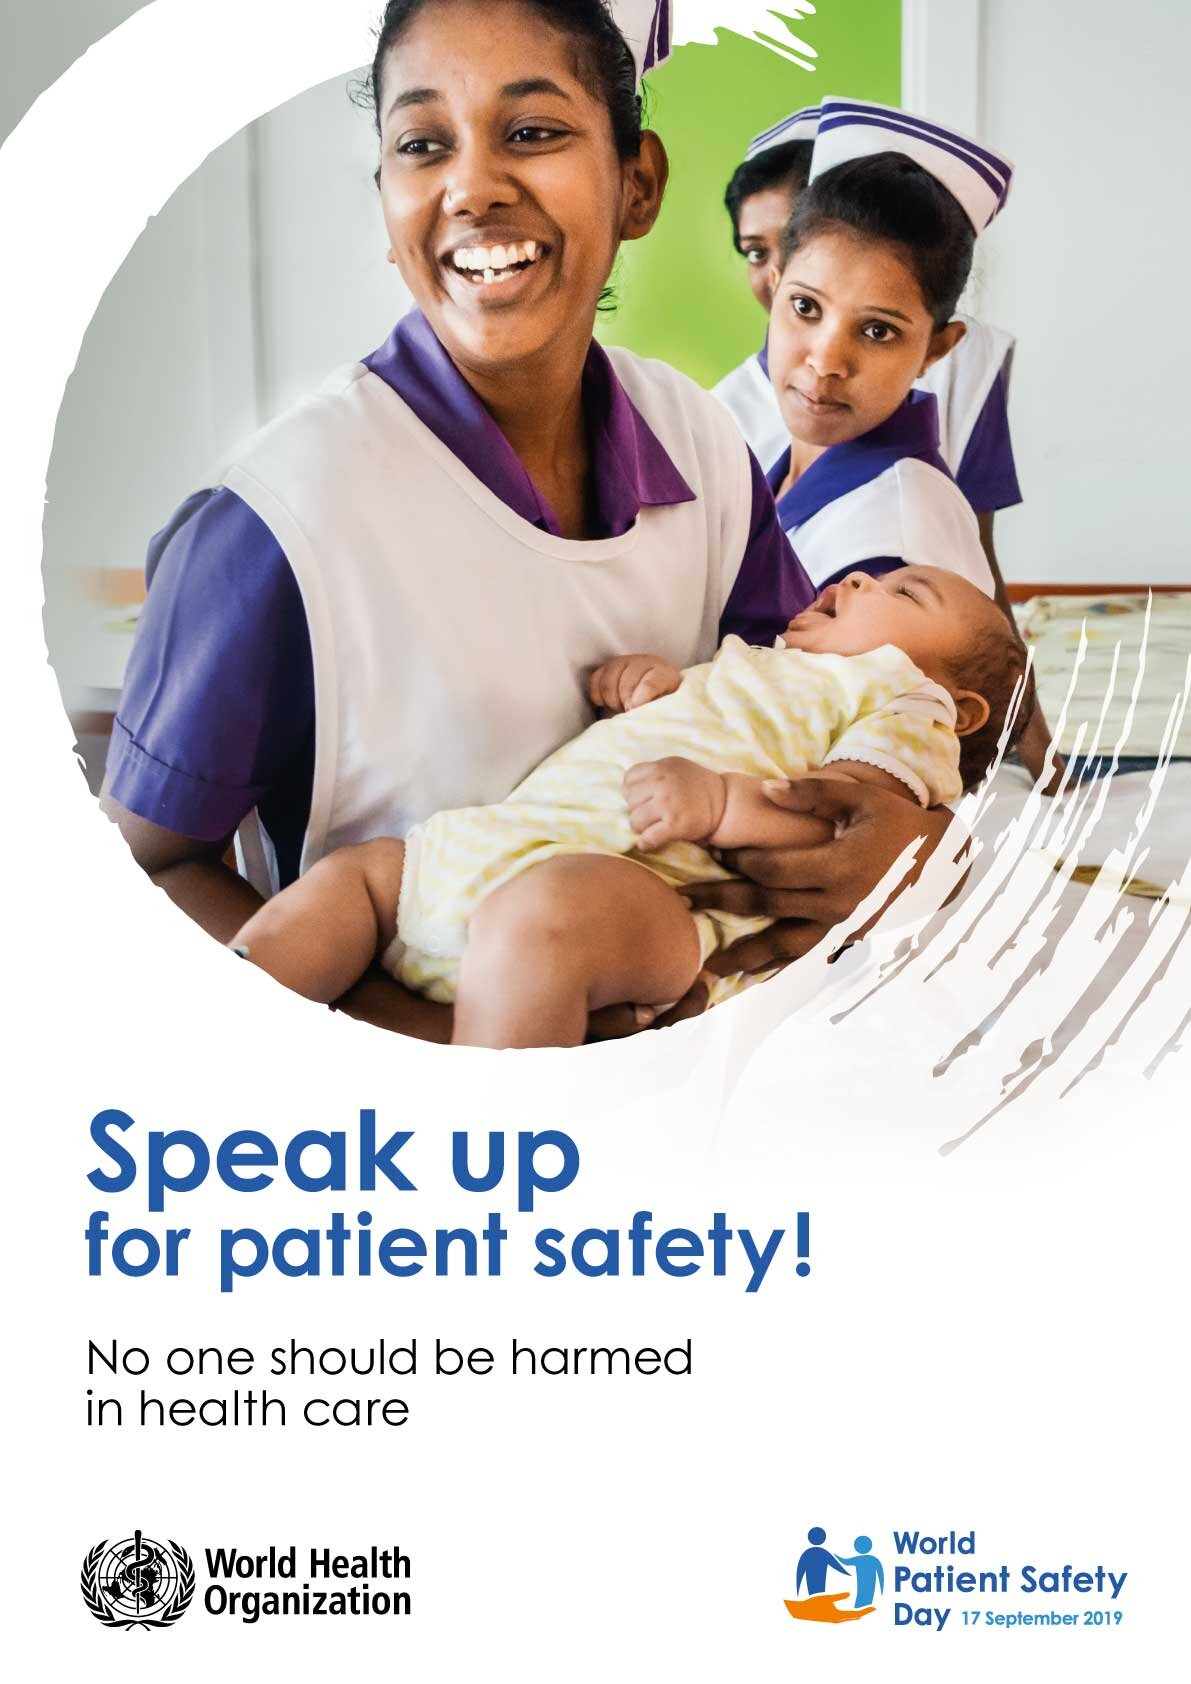 who-patient-safety-day-poster-en2ce629e6d2a604ad29b55c0263266f2c0.jpg